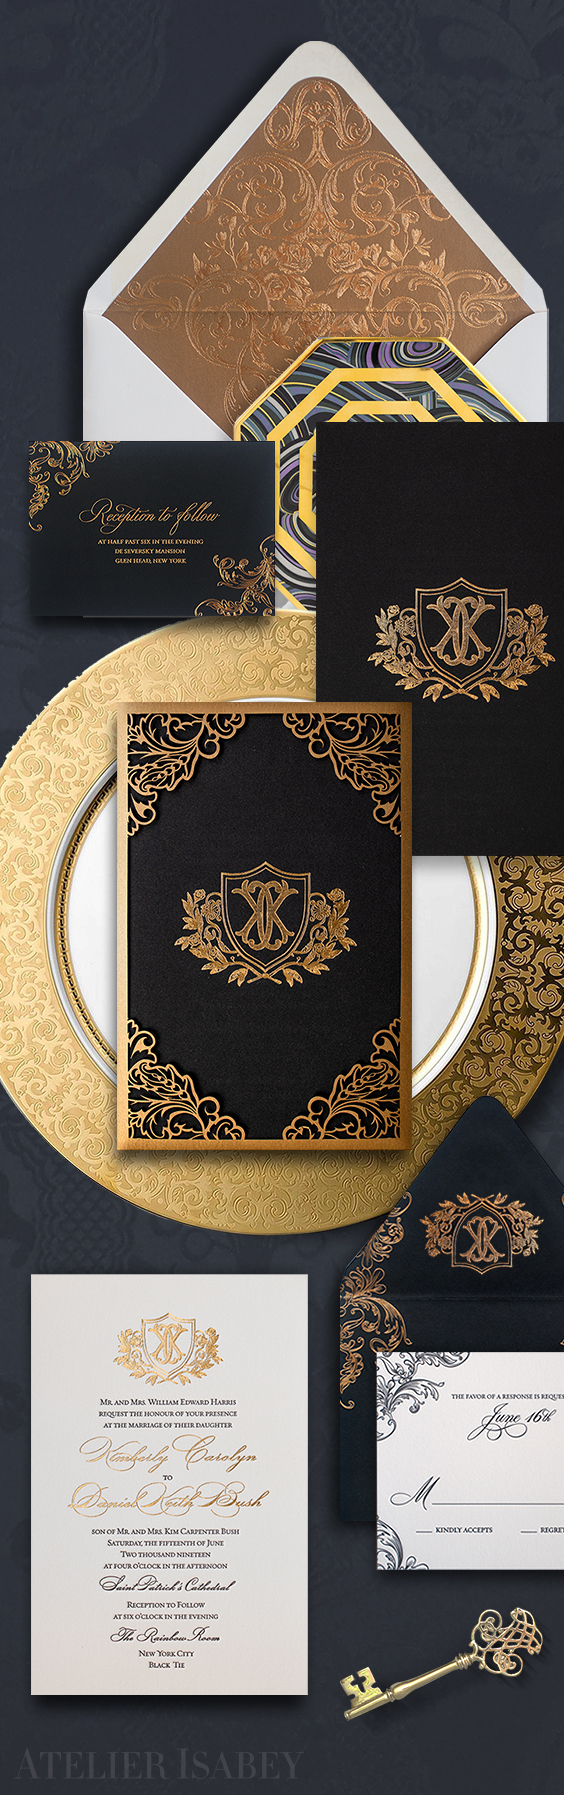 Ornate black and gold wedding invitation